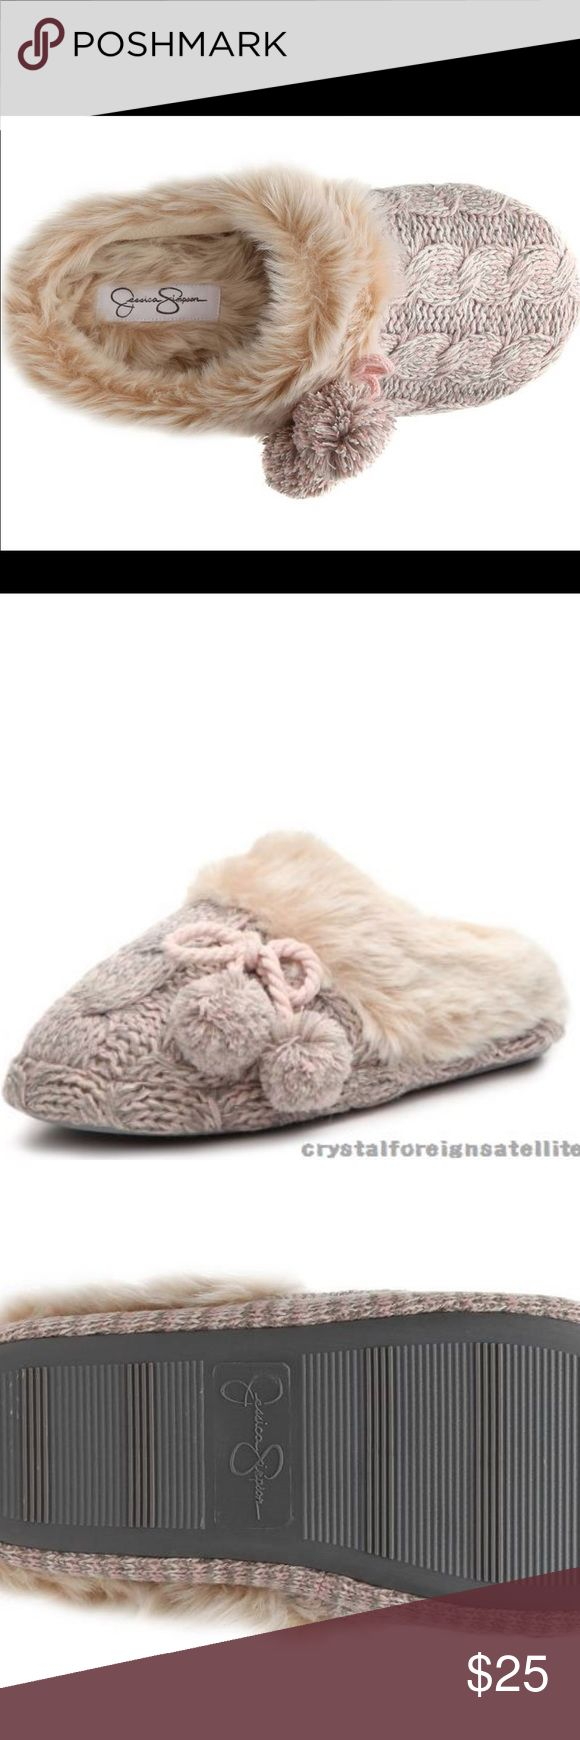 Jessica Simpson slippers New in box Jessica Simpson Shoes Slippers